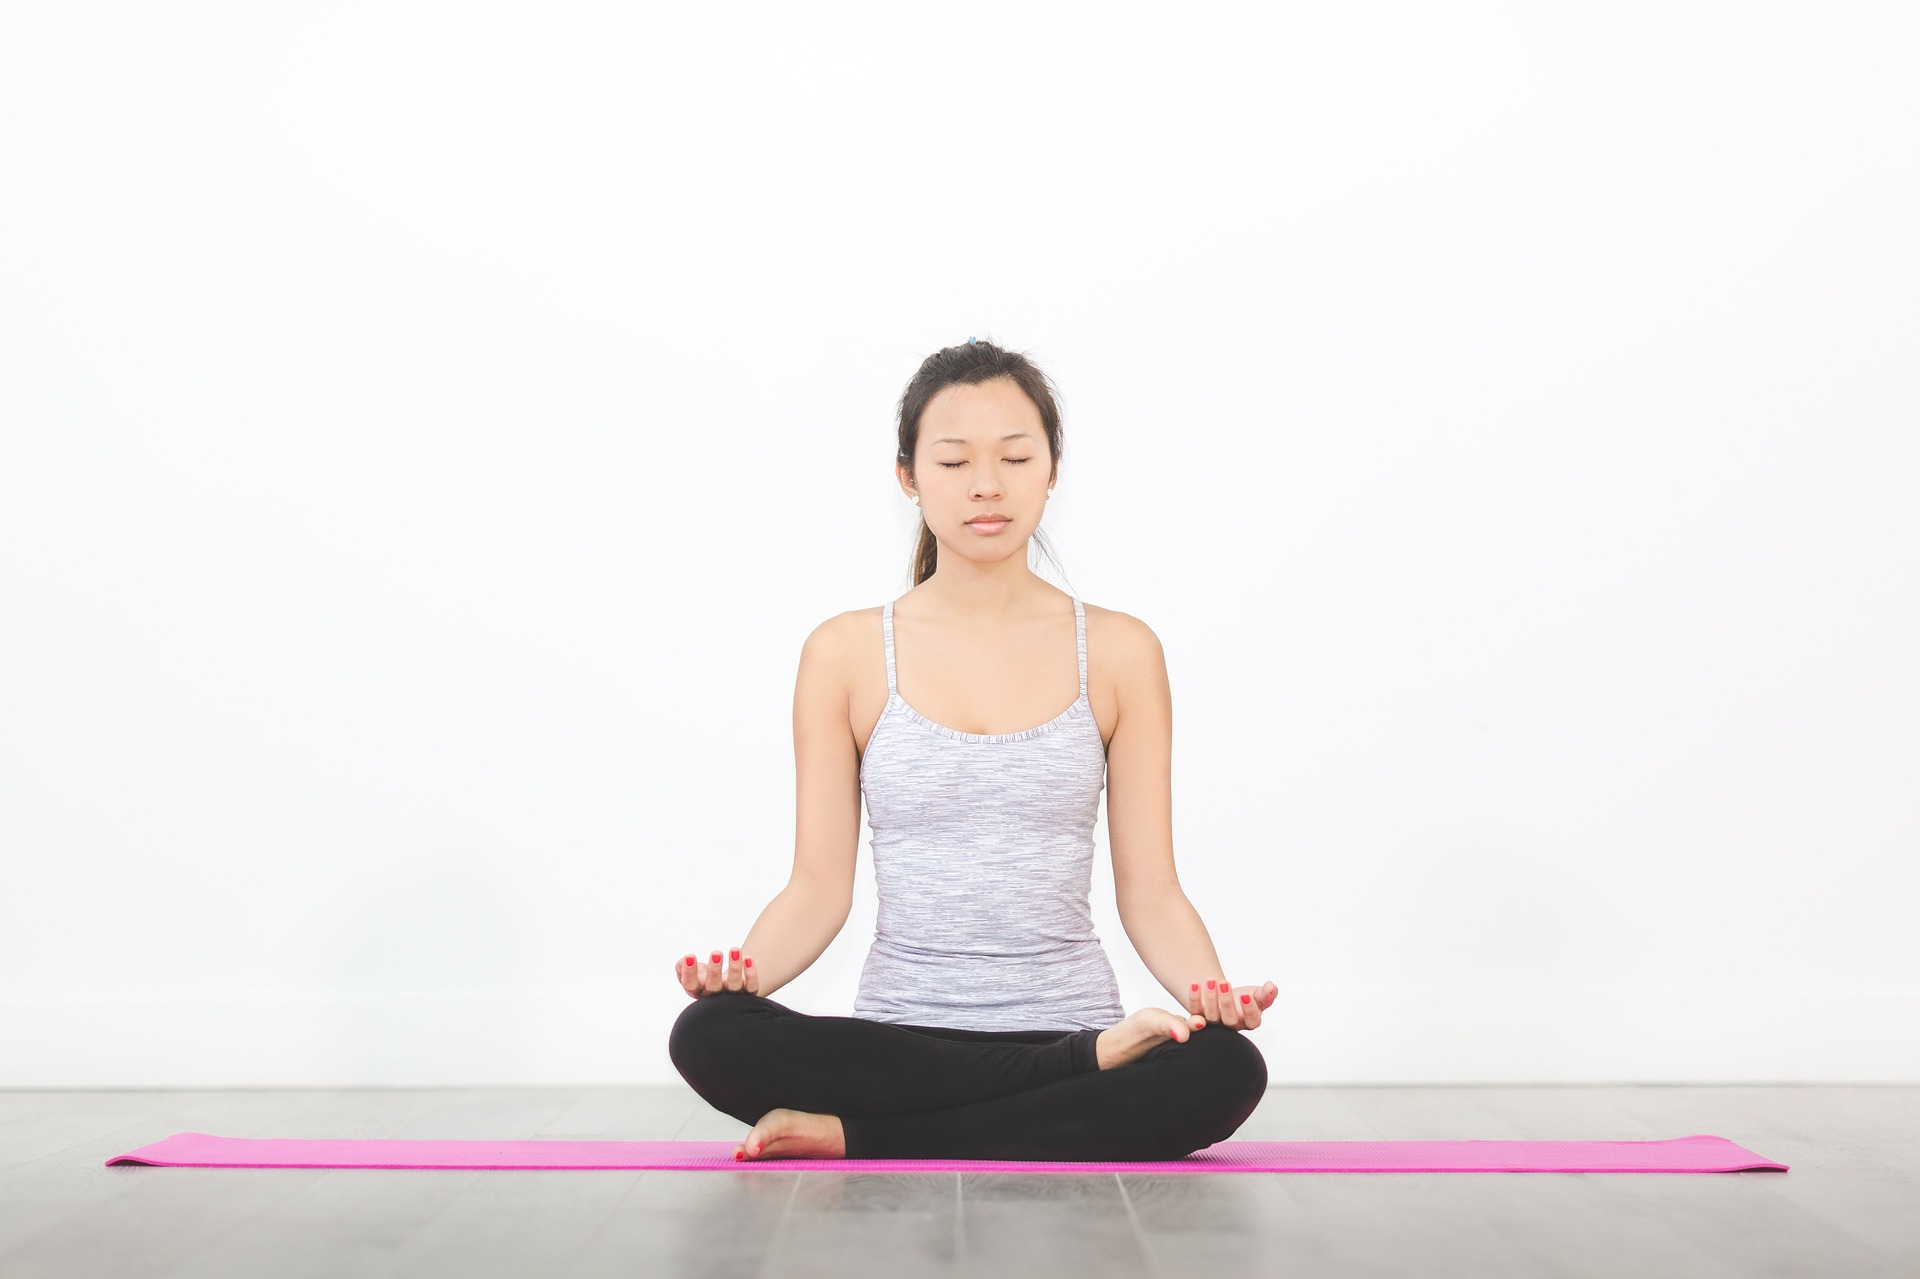 A female athlete sitting on a yoga map practicing mindful meditation